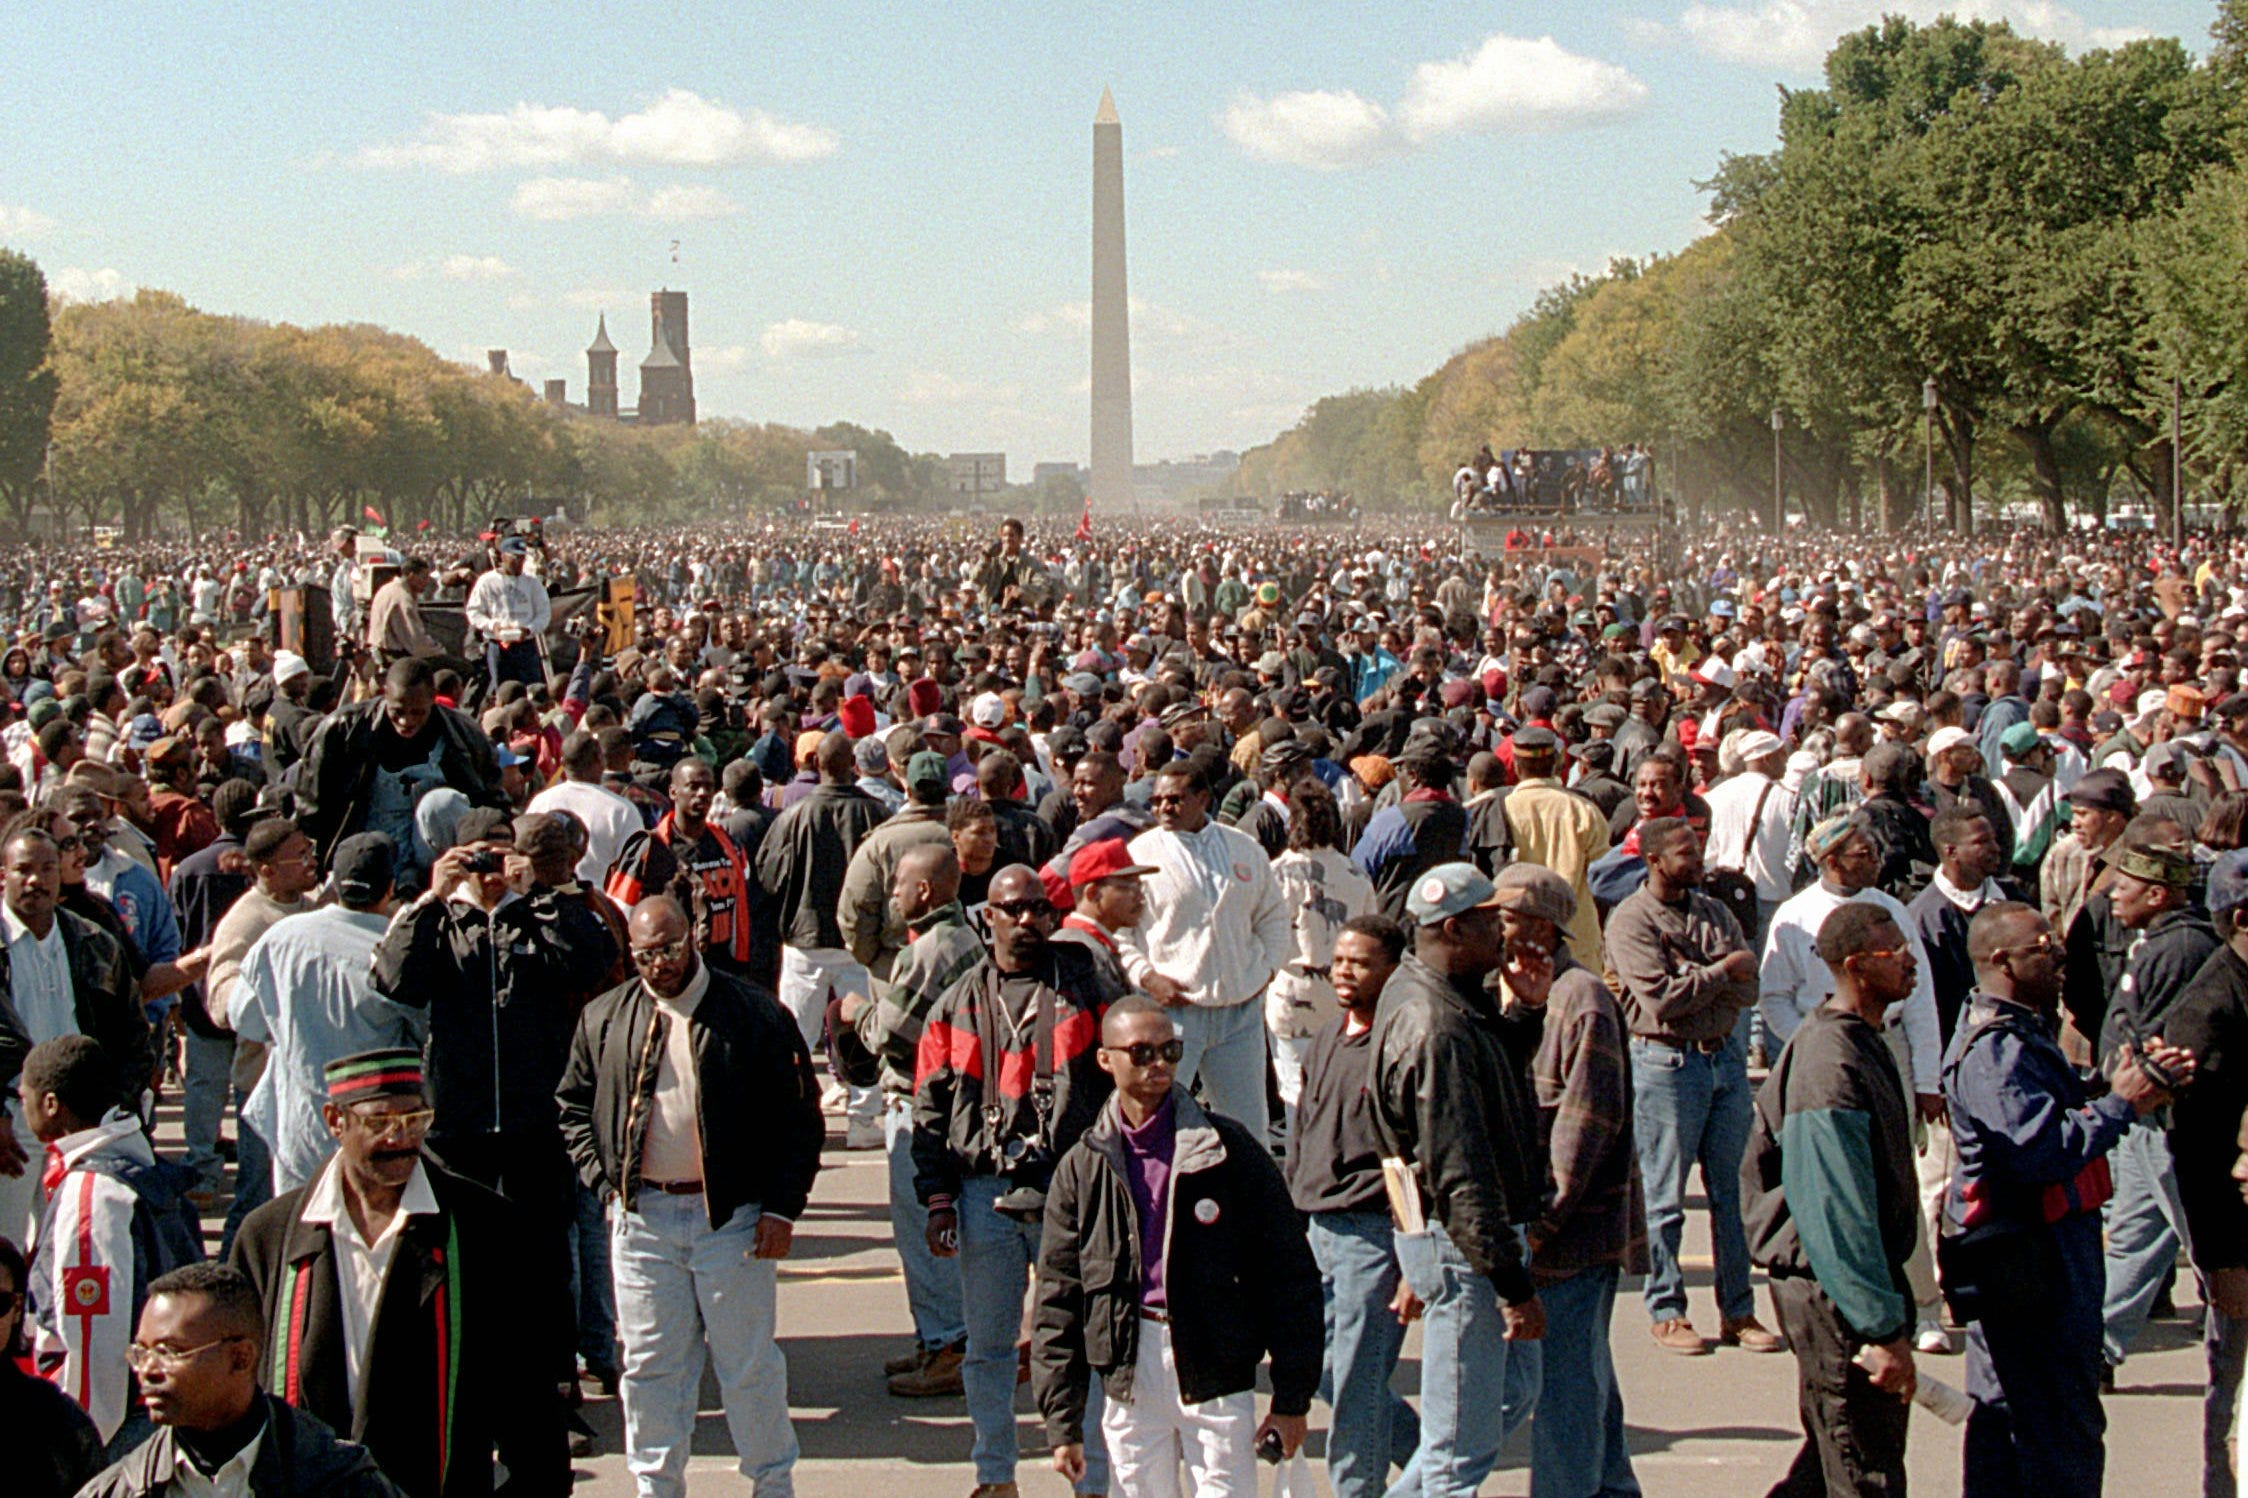 """The Million Man March was controversial and divisive at the time.Some didn't want to be associated with the Nation of Islamor itsleader, Louis Farrakhan. Others saw the stated purpose—""""ADayof Atonement""""—as an acceptance of guilt by Black men for conditions that are a legacy of slavery, discrimination and white supremacy.But the idea of uniting inadeclaration of African American pain, power andhumanity still drew hundreds of thousands to the National Mall."""